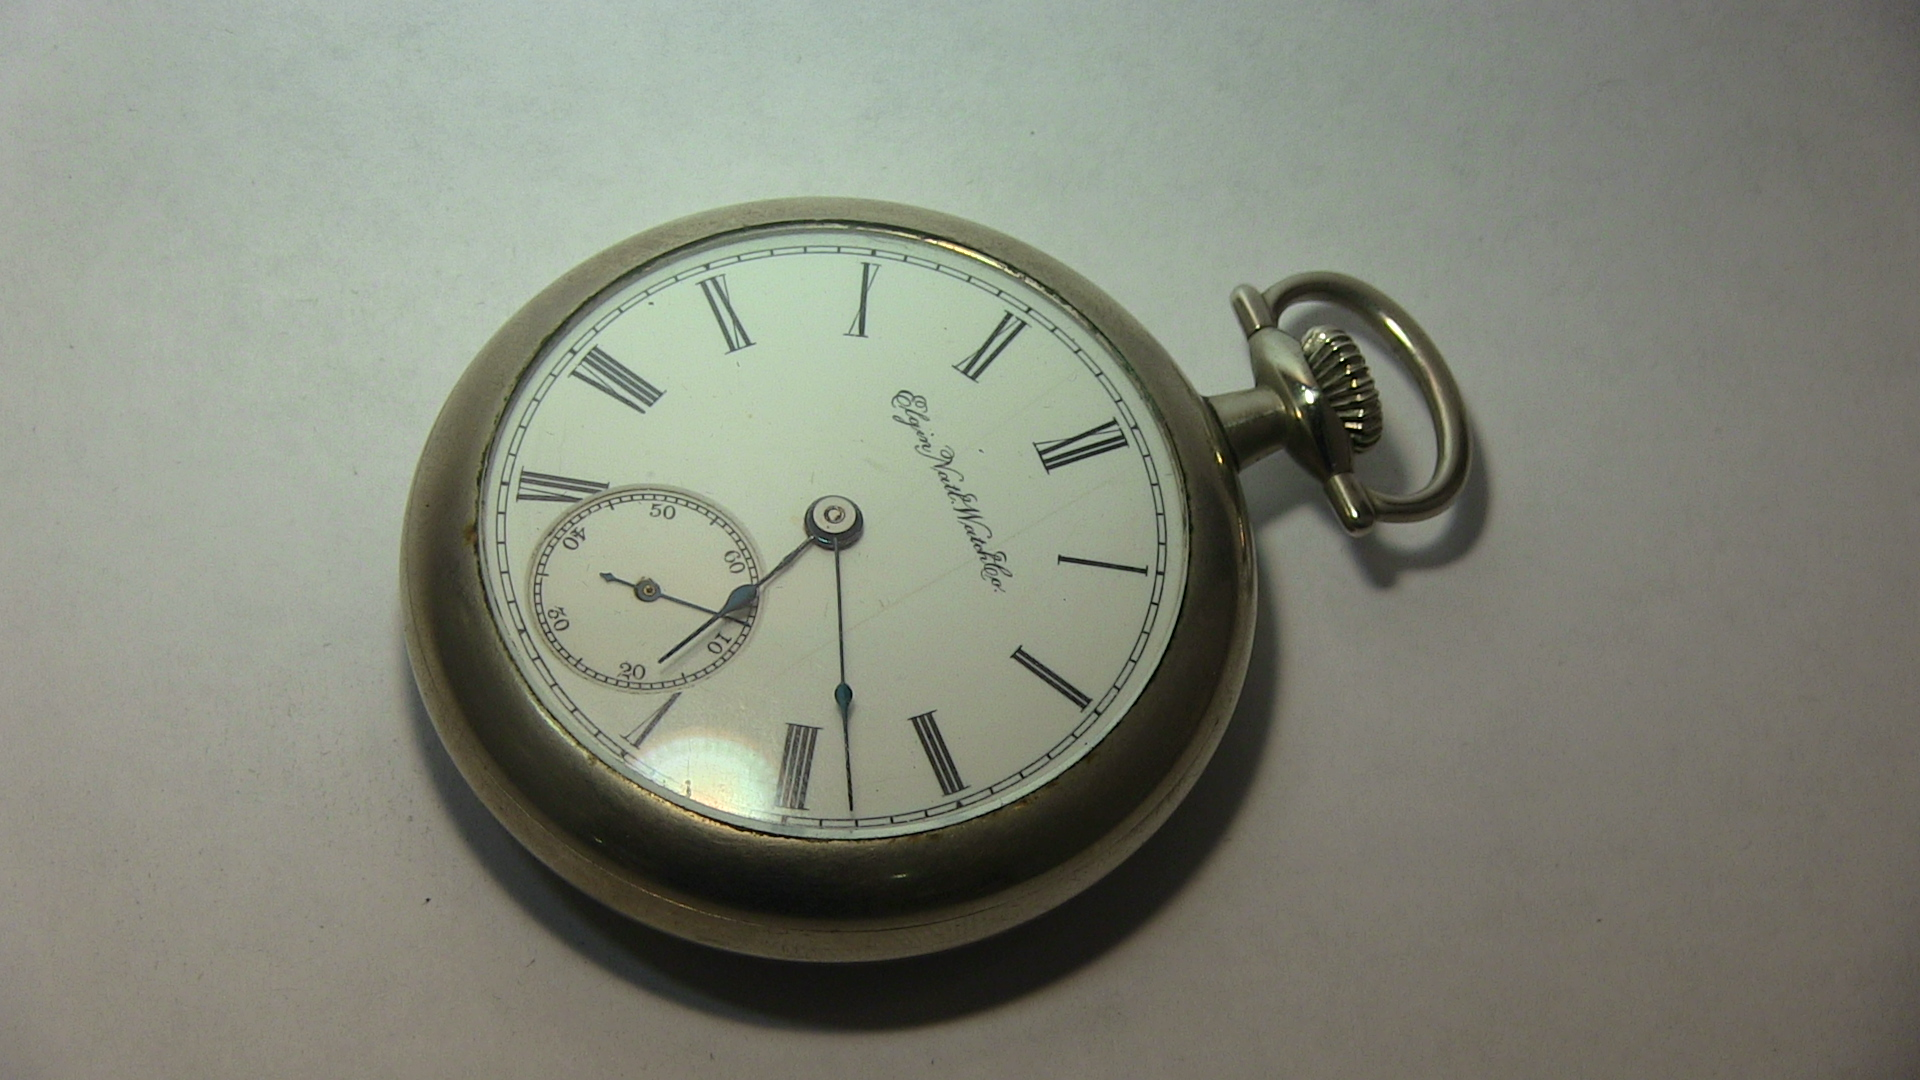 elgin dating service Dating elgin pocket watch serial number elgin happened their first move inand here firm the first view just to be qualified for tactic service.